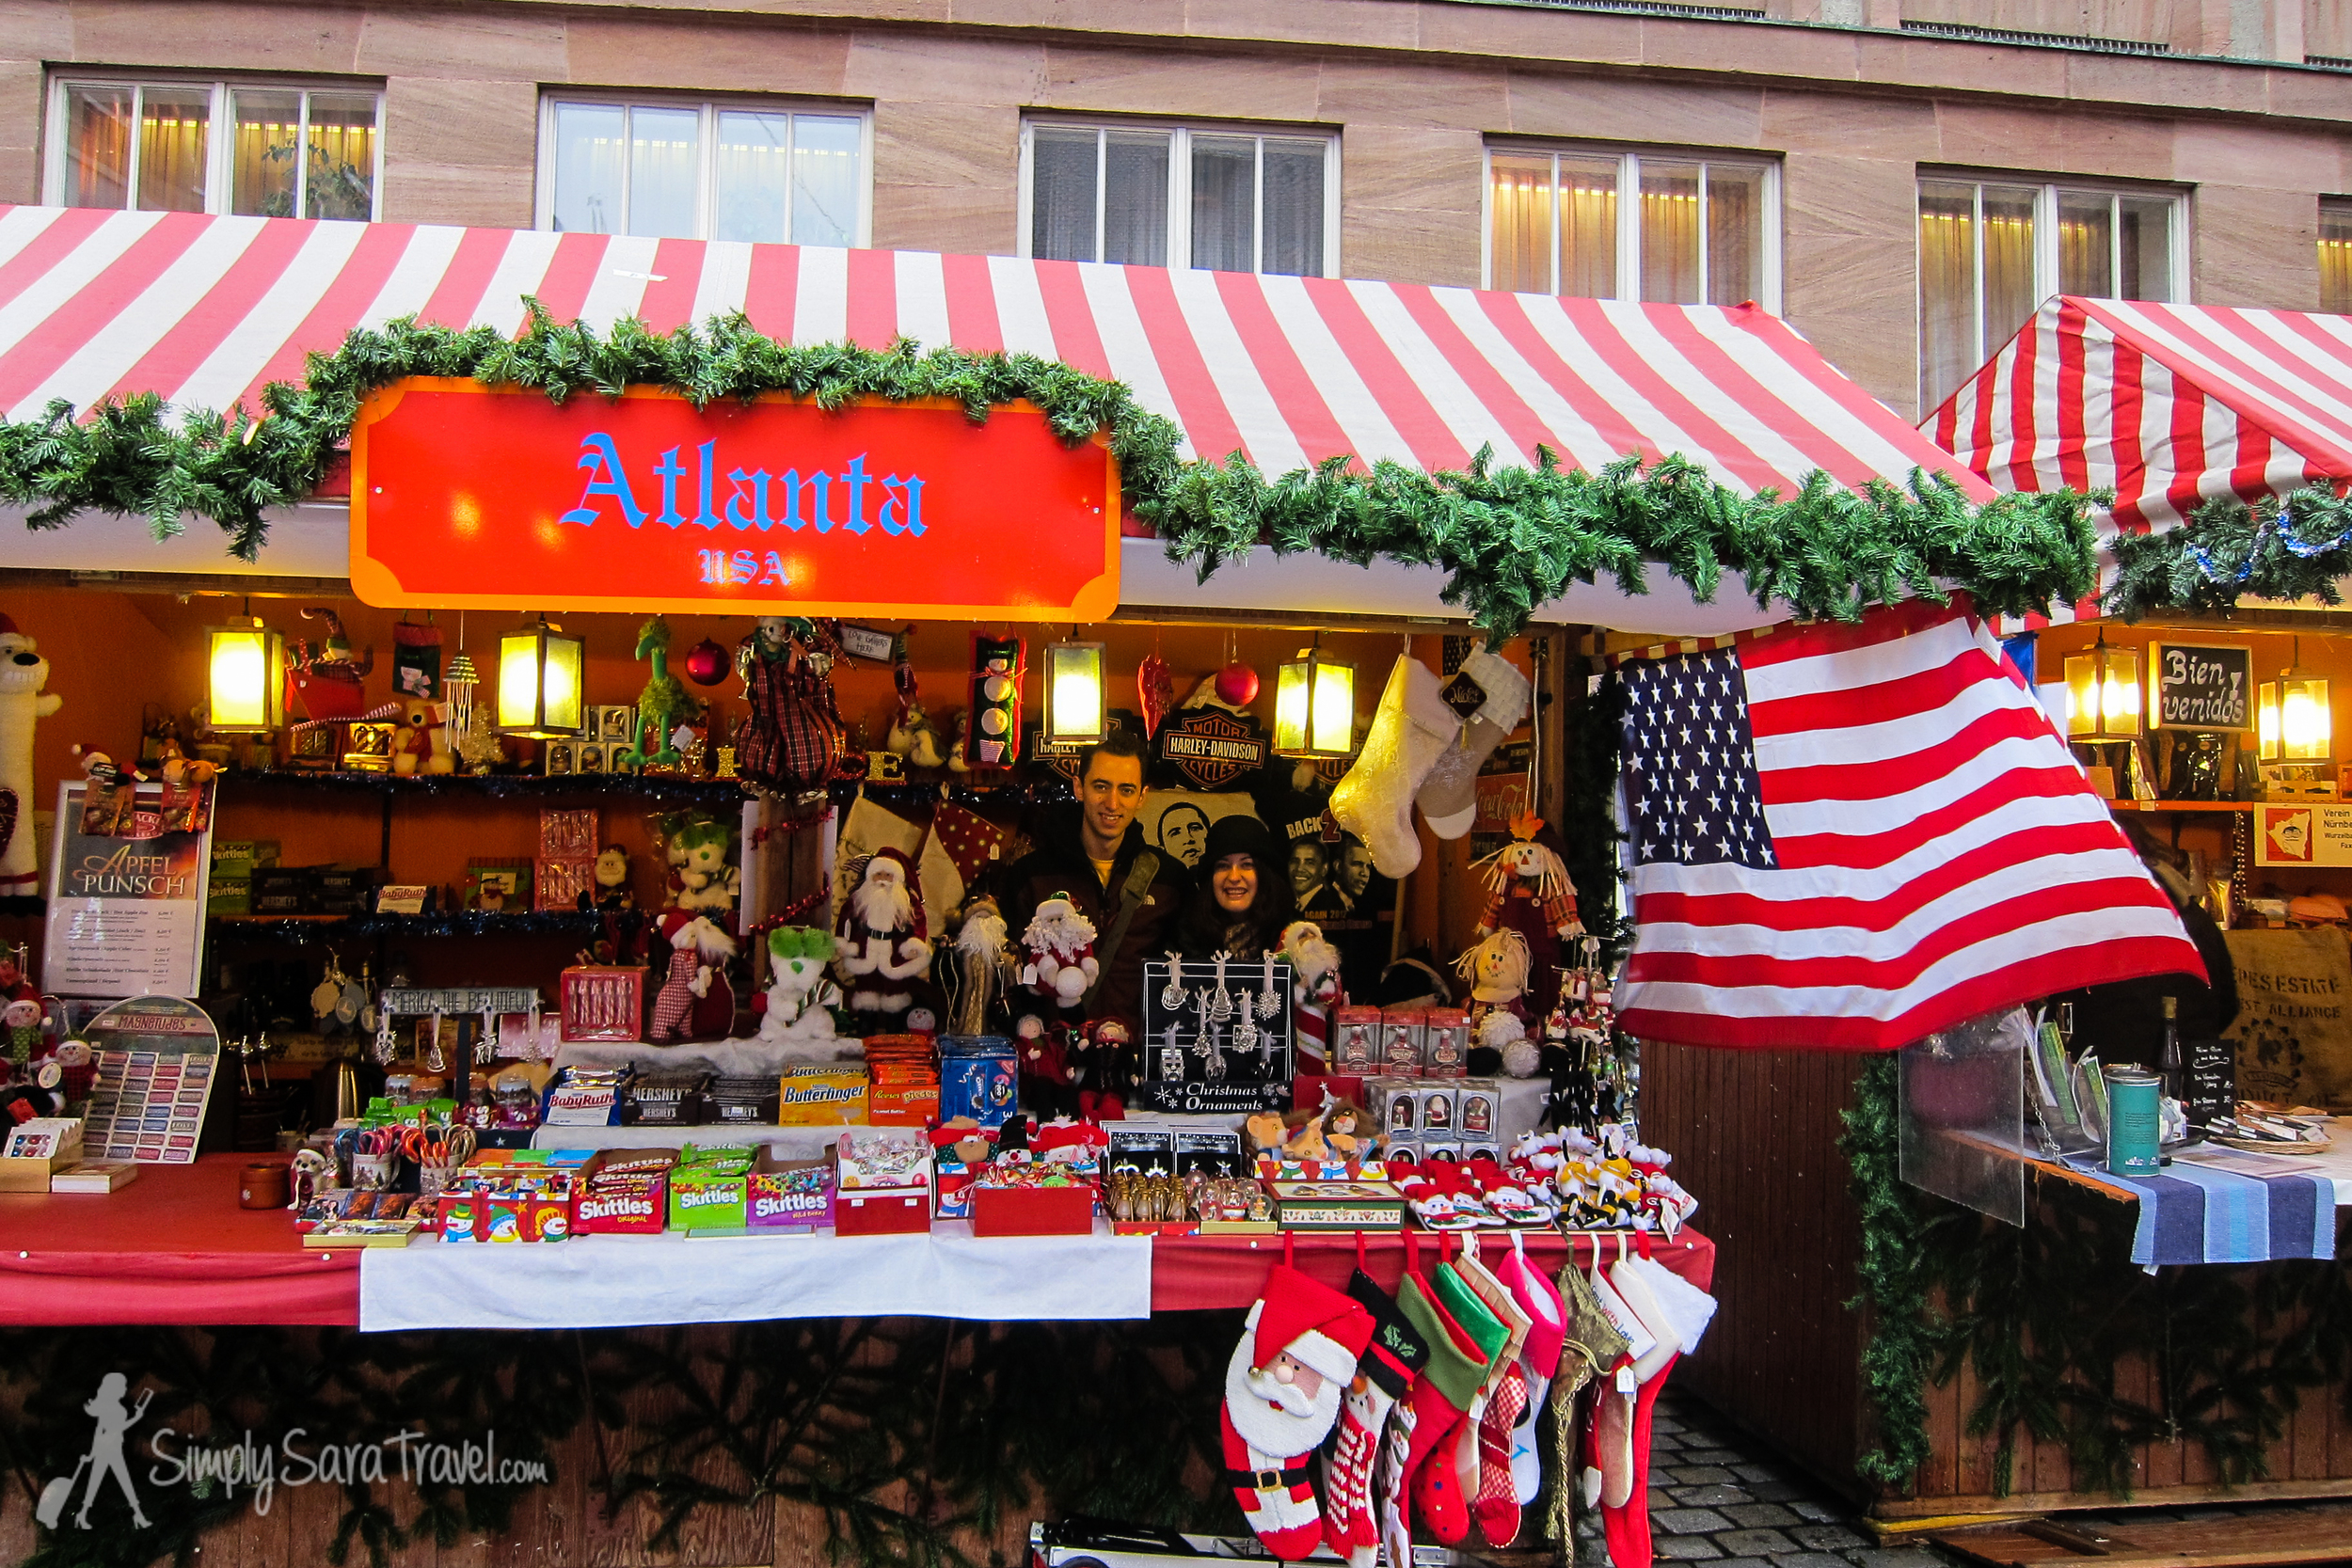 Some of the cities had an international market among the Christmas markets with products from countries all over the world. We found a USA stand inNürnberg that sold Obama T-shirts, Harley Davidson items, and Skittles, among other things. The shopkeepers let us stand behind the counter for a picture!